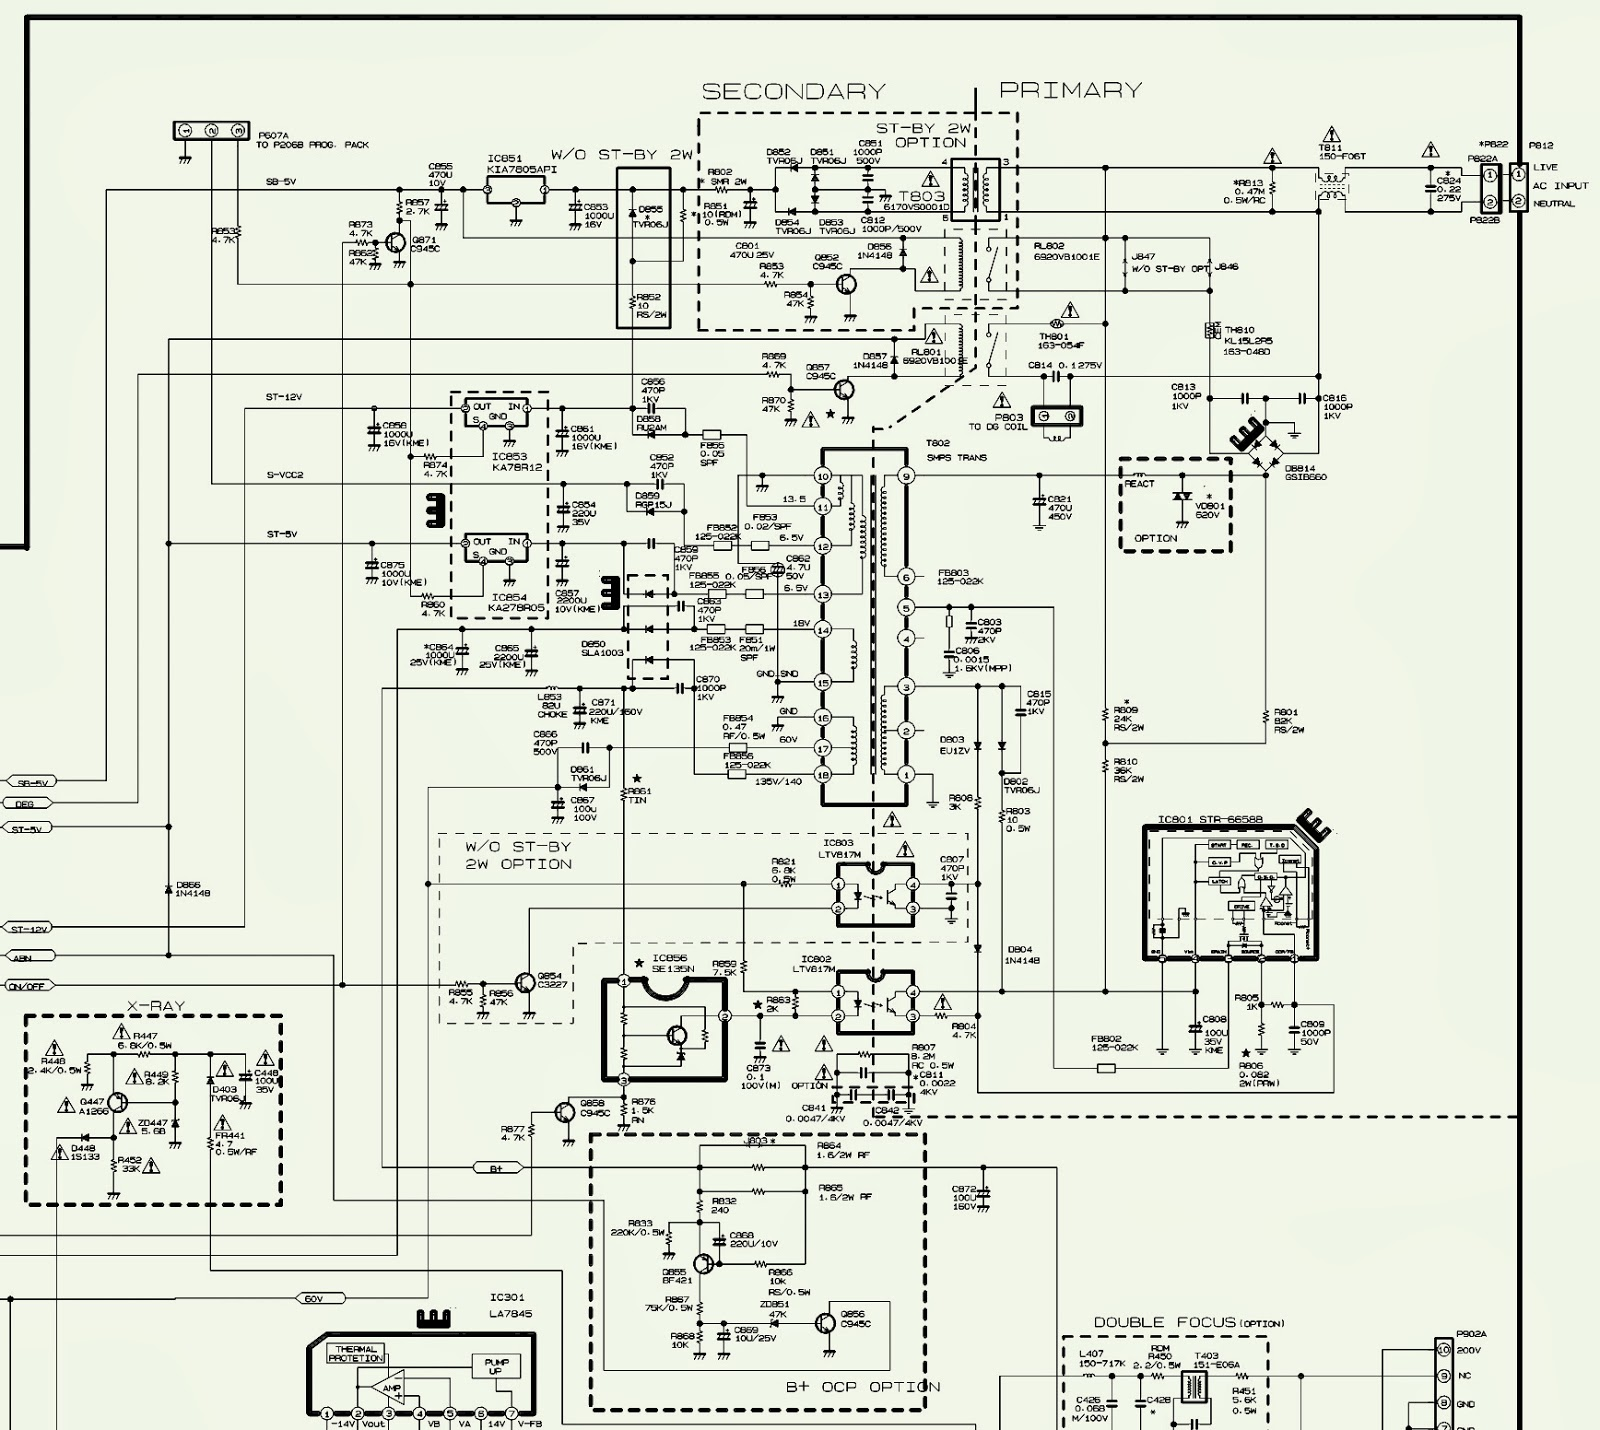 hight resolution of wiring diagram lg tv wiring diagram blogs maytag washer wiring diagram wiring diagram lg tv